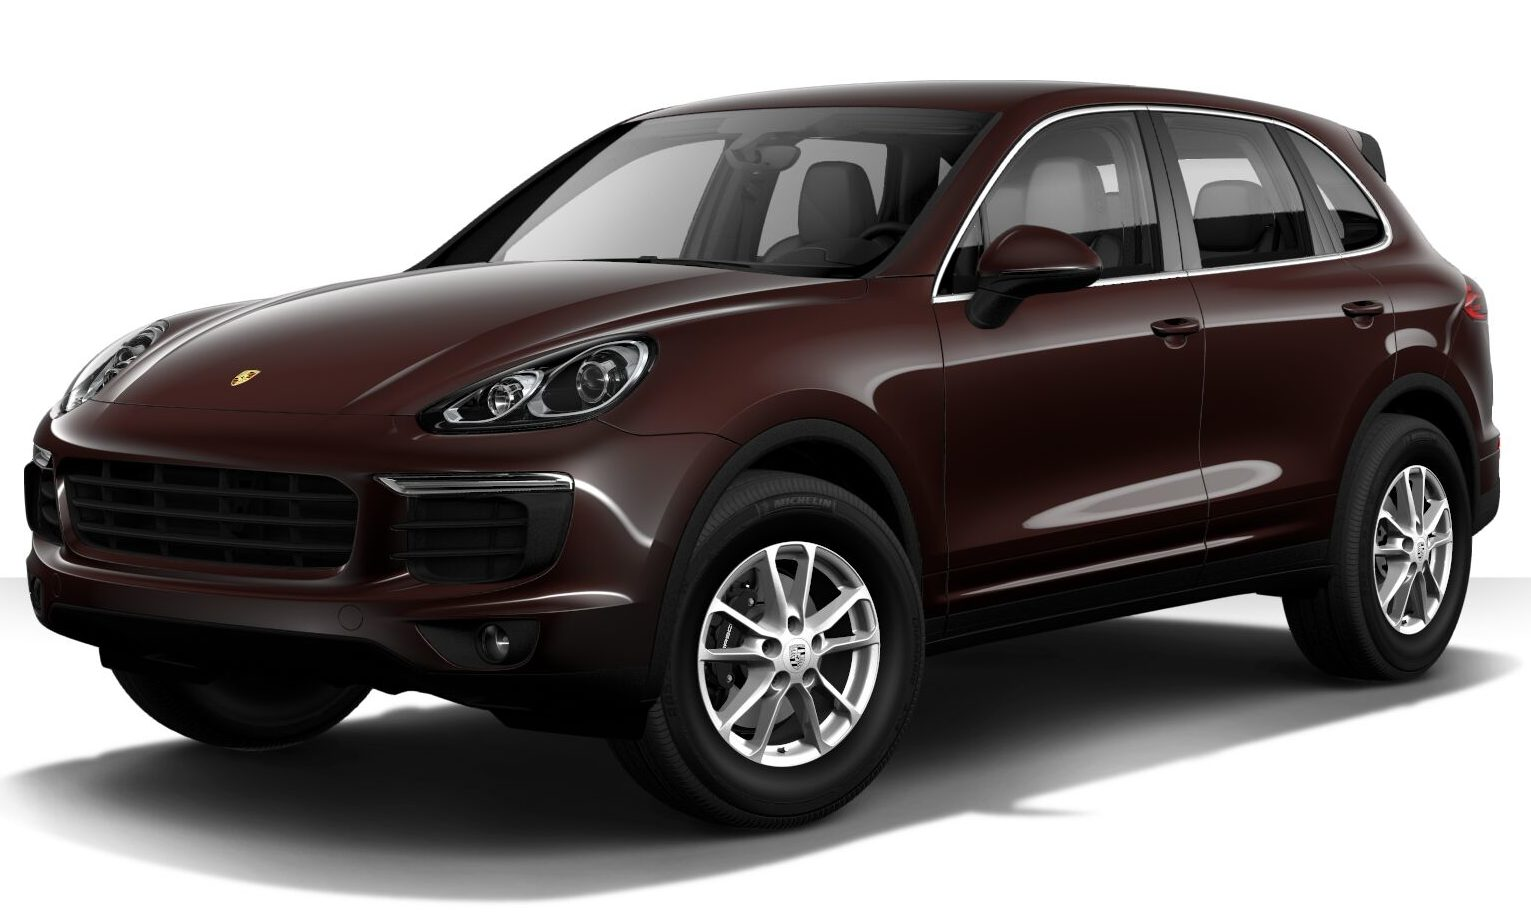 2017 porsche cayenne s car 2017 porsche cayenne car. Black Bedroom Furniture Sets. Home Design Ideas